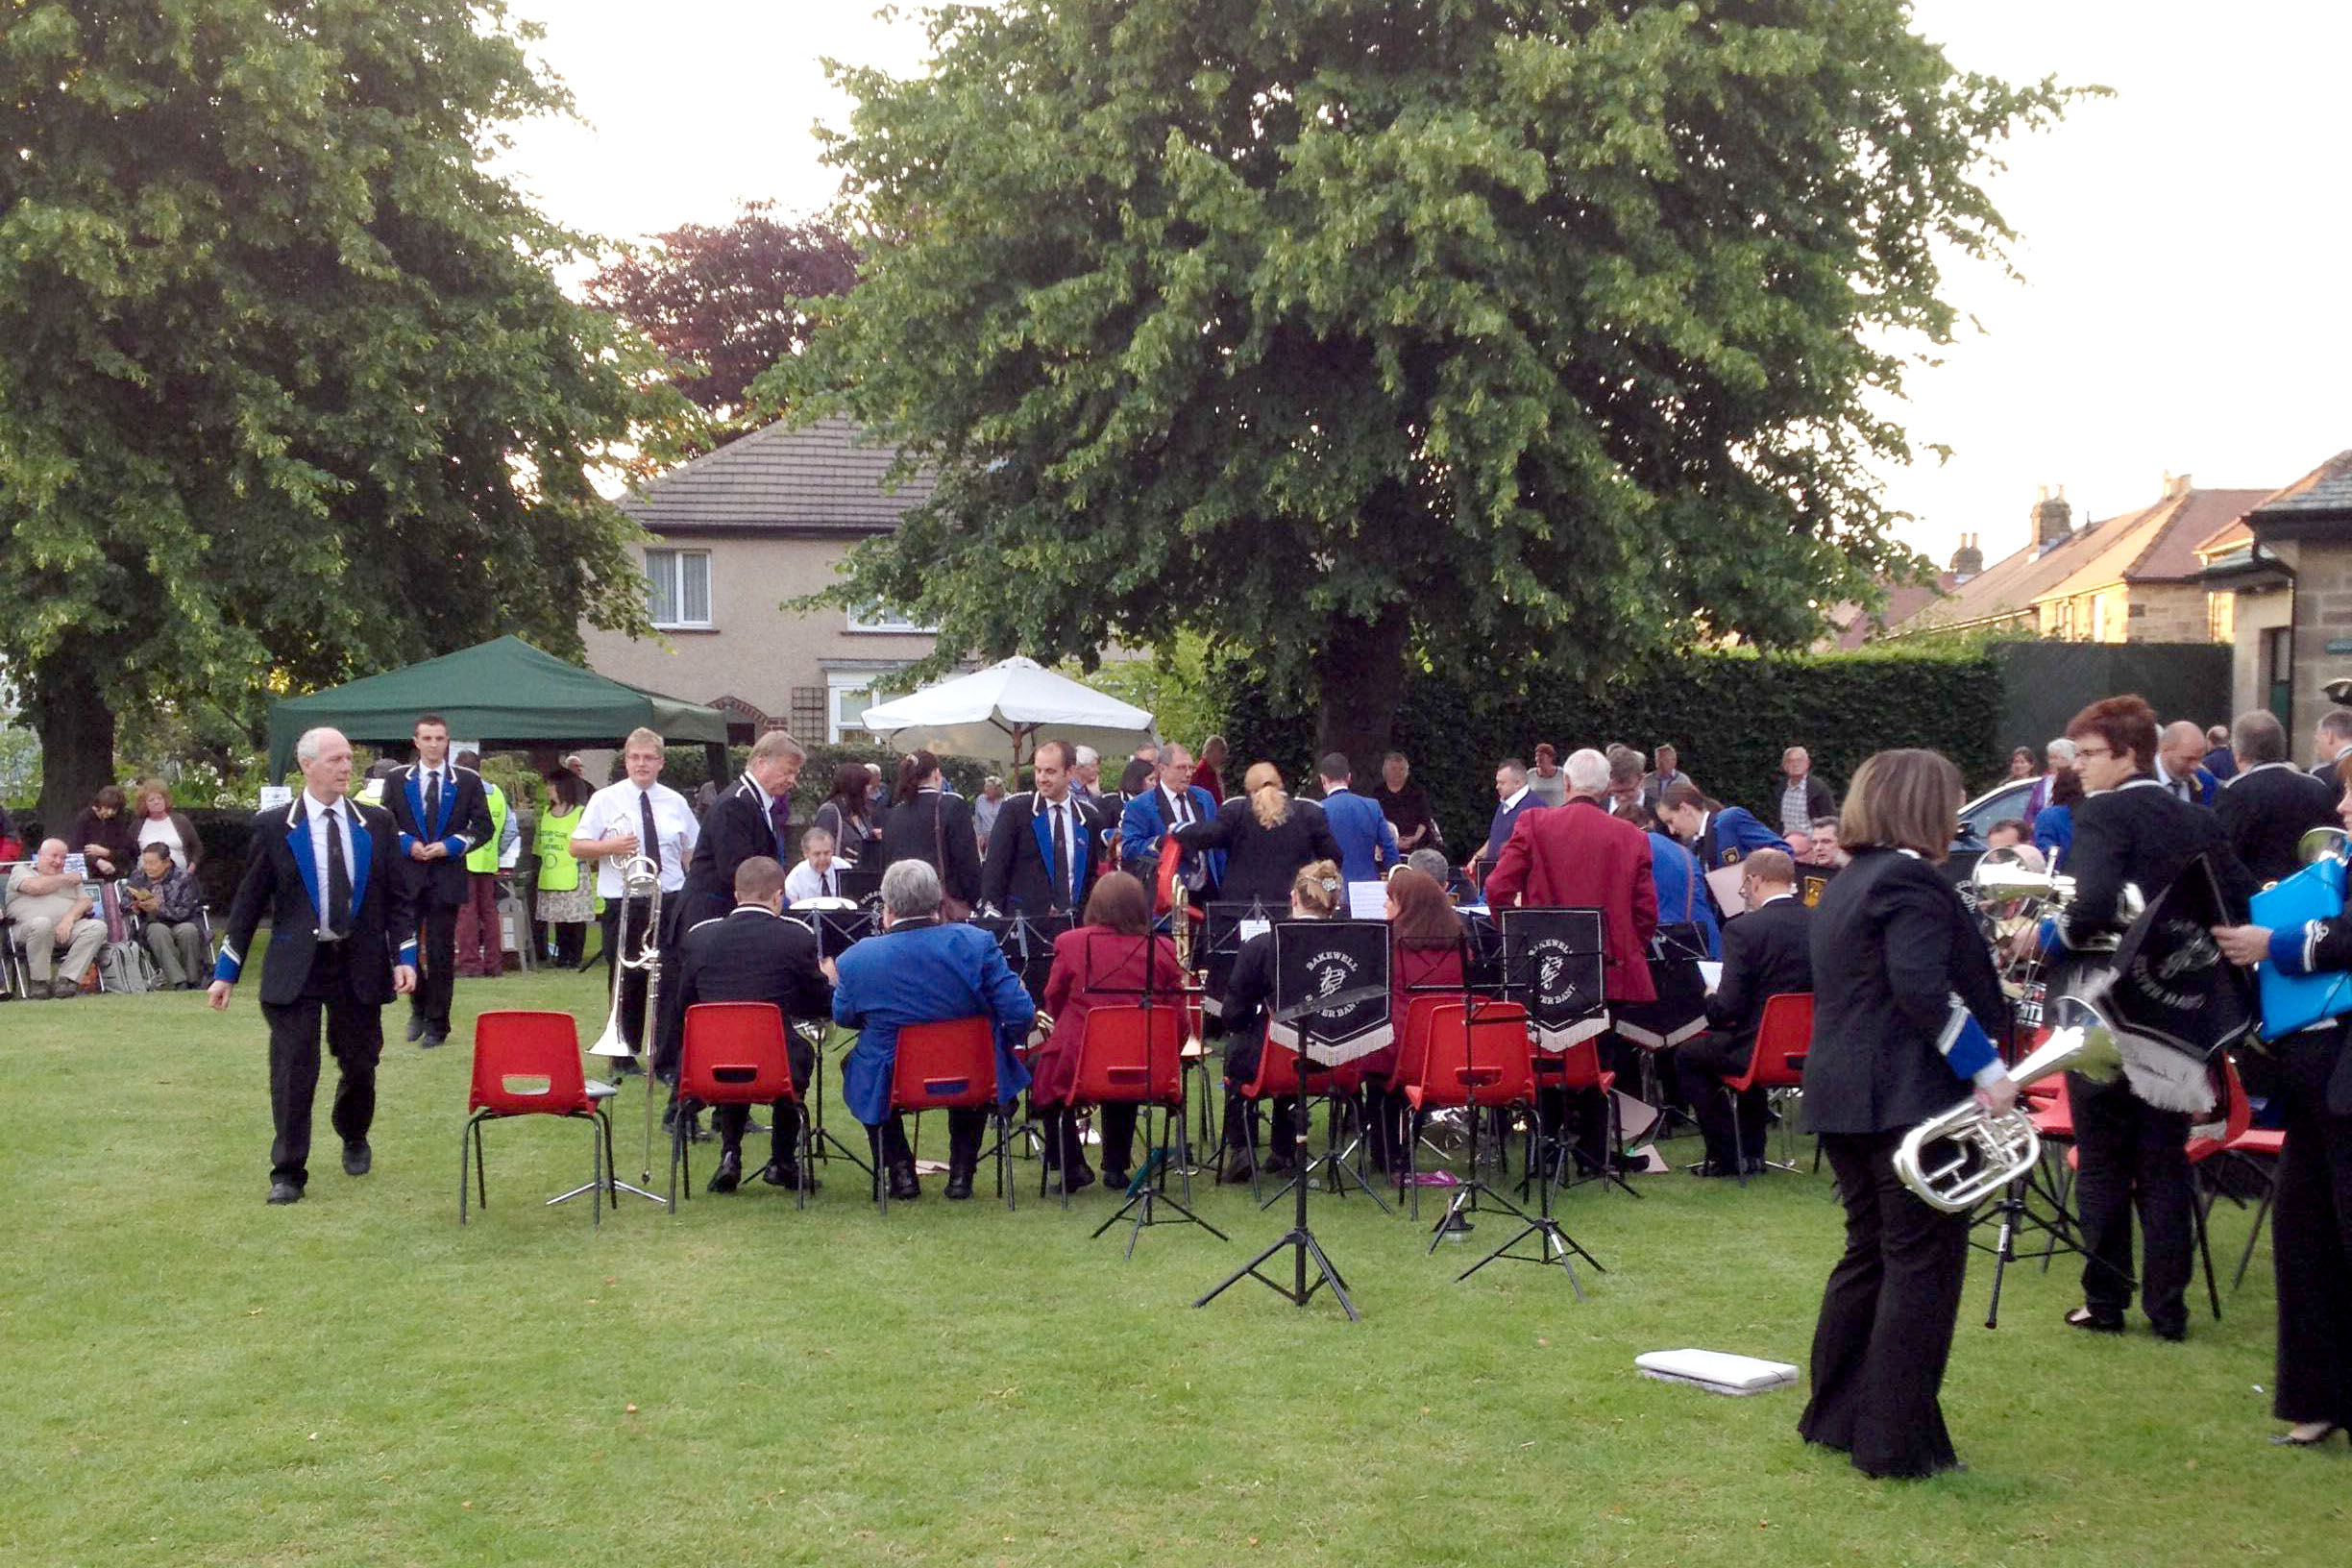 Massed Bands - Bakewell Park Jun 14 3.jpg